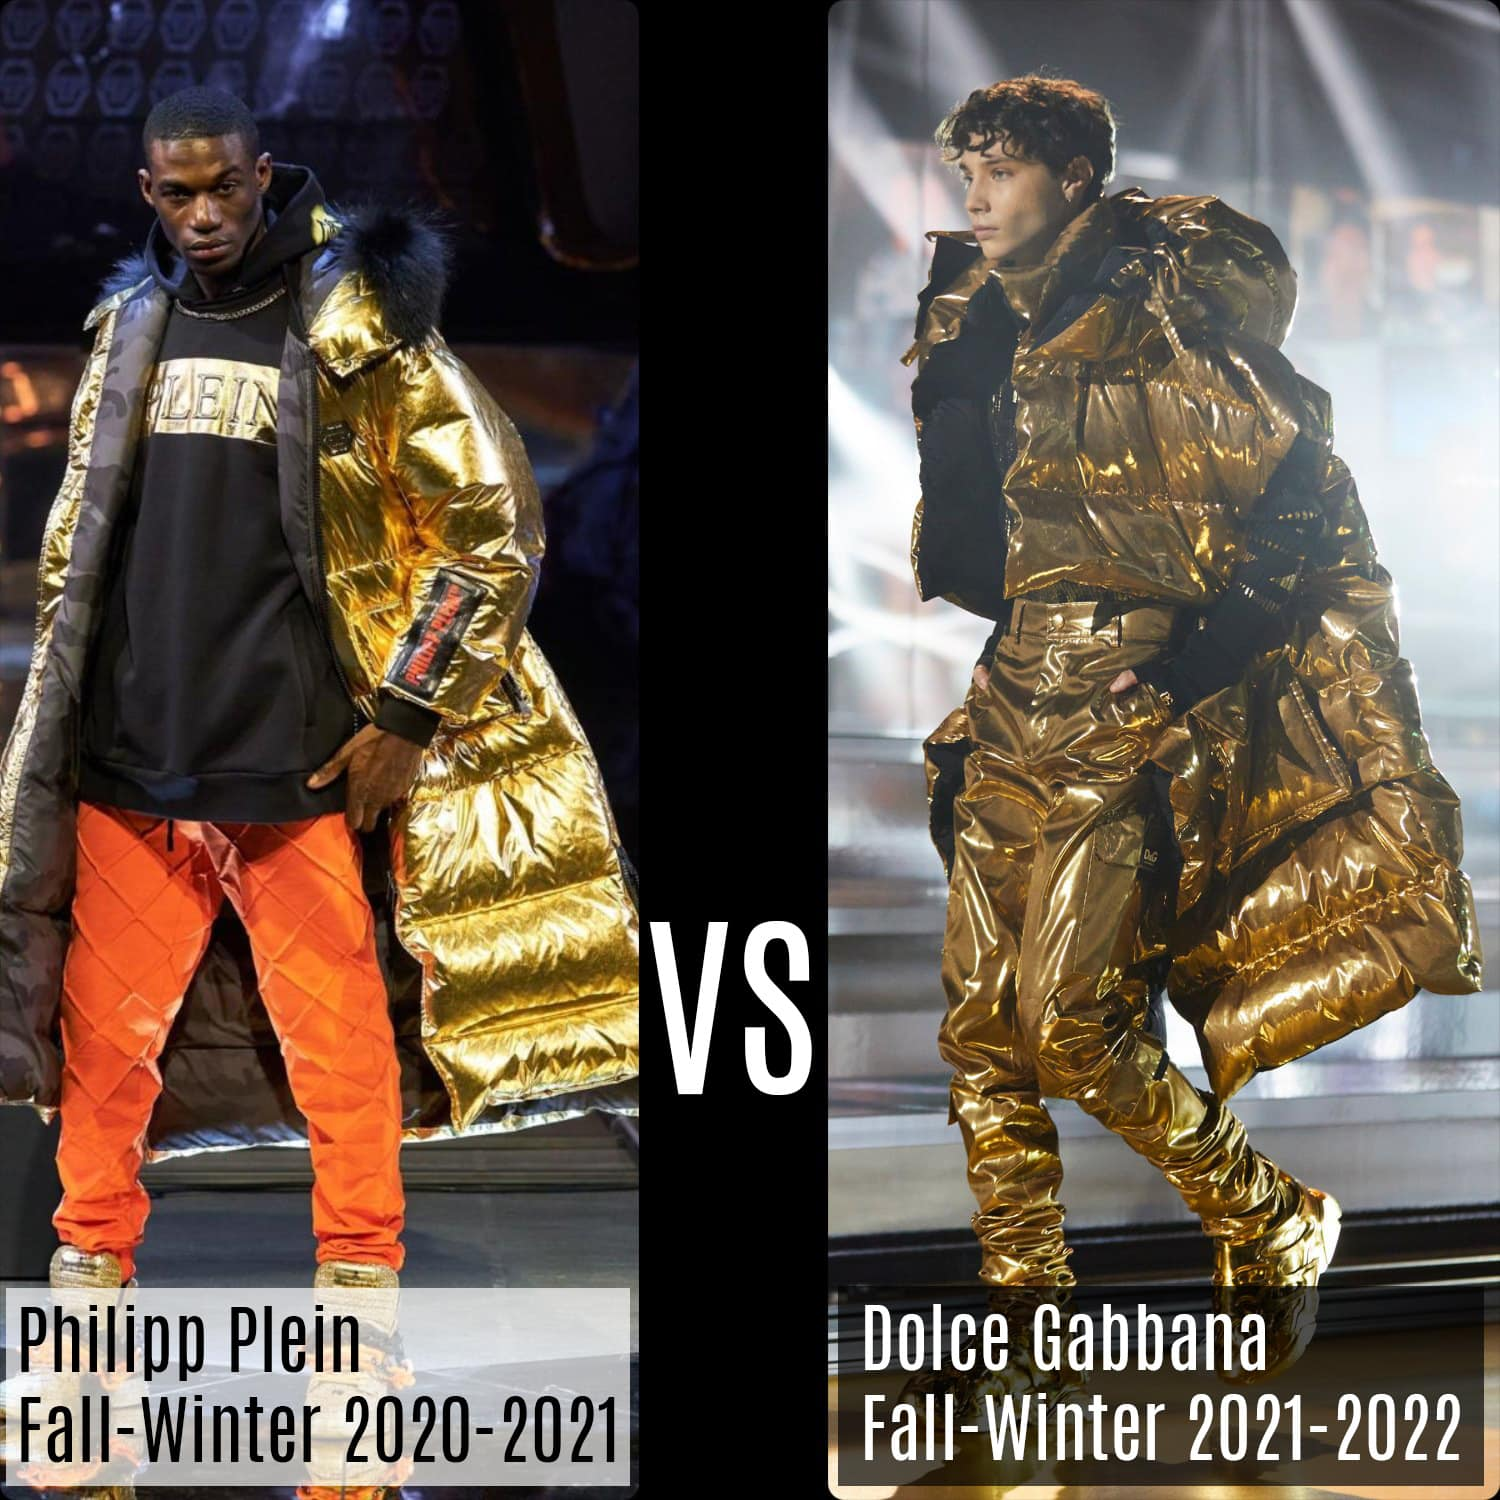 Philipp Plein Fall-Winter 2020-2021 vs Dolce Gabbana Fall-Winter 2021-2022